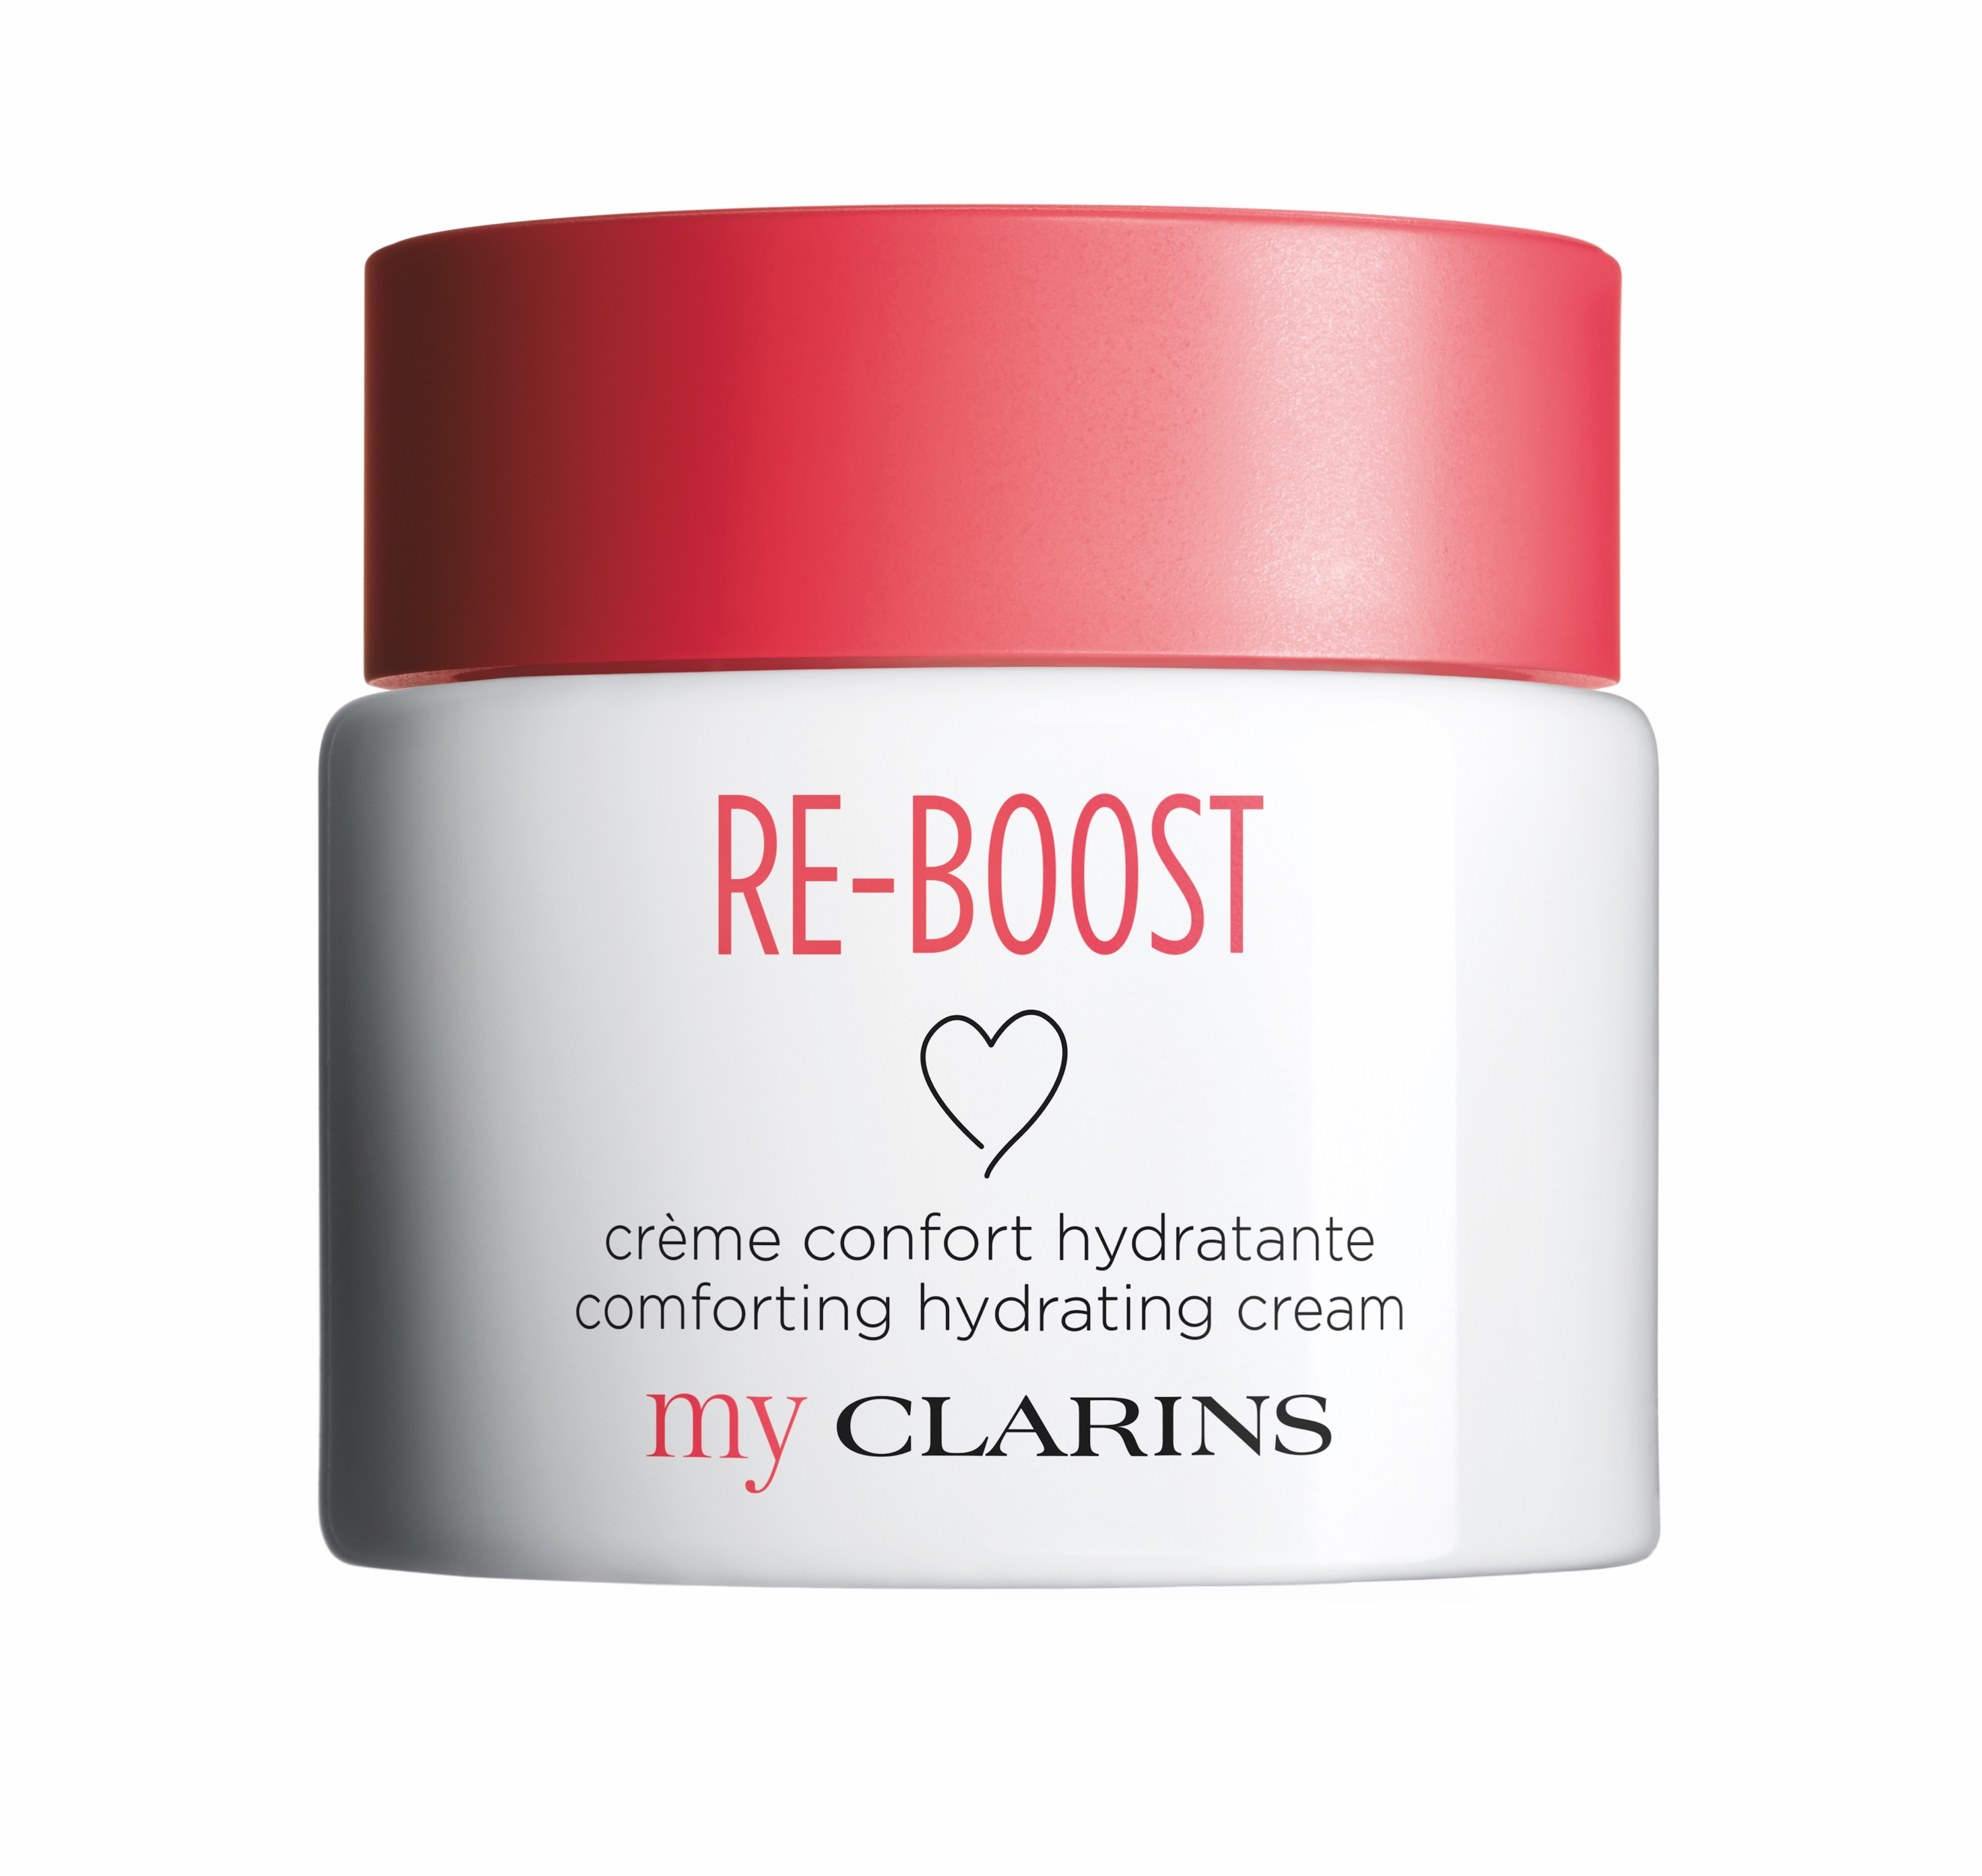 my clarins cream for dry skin